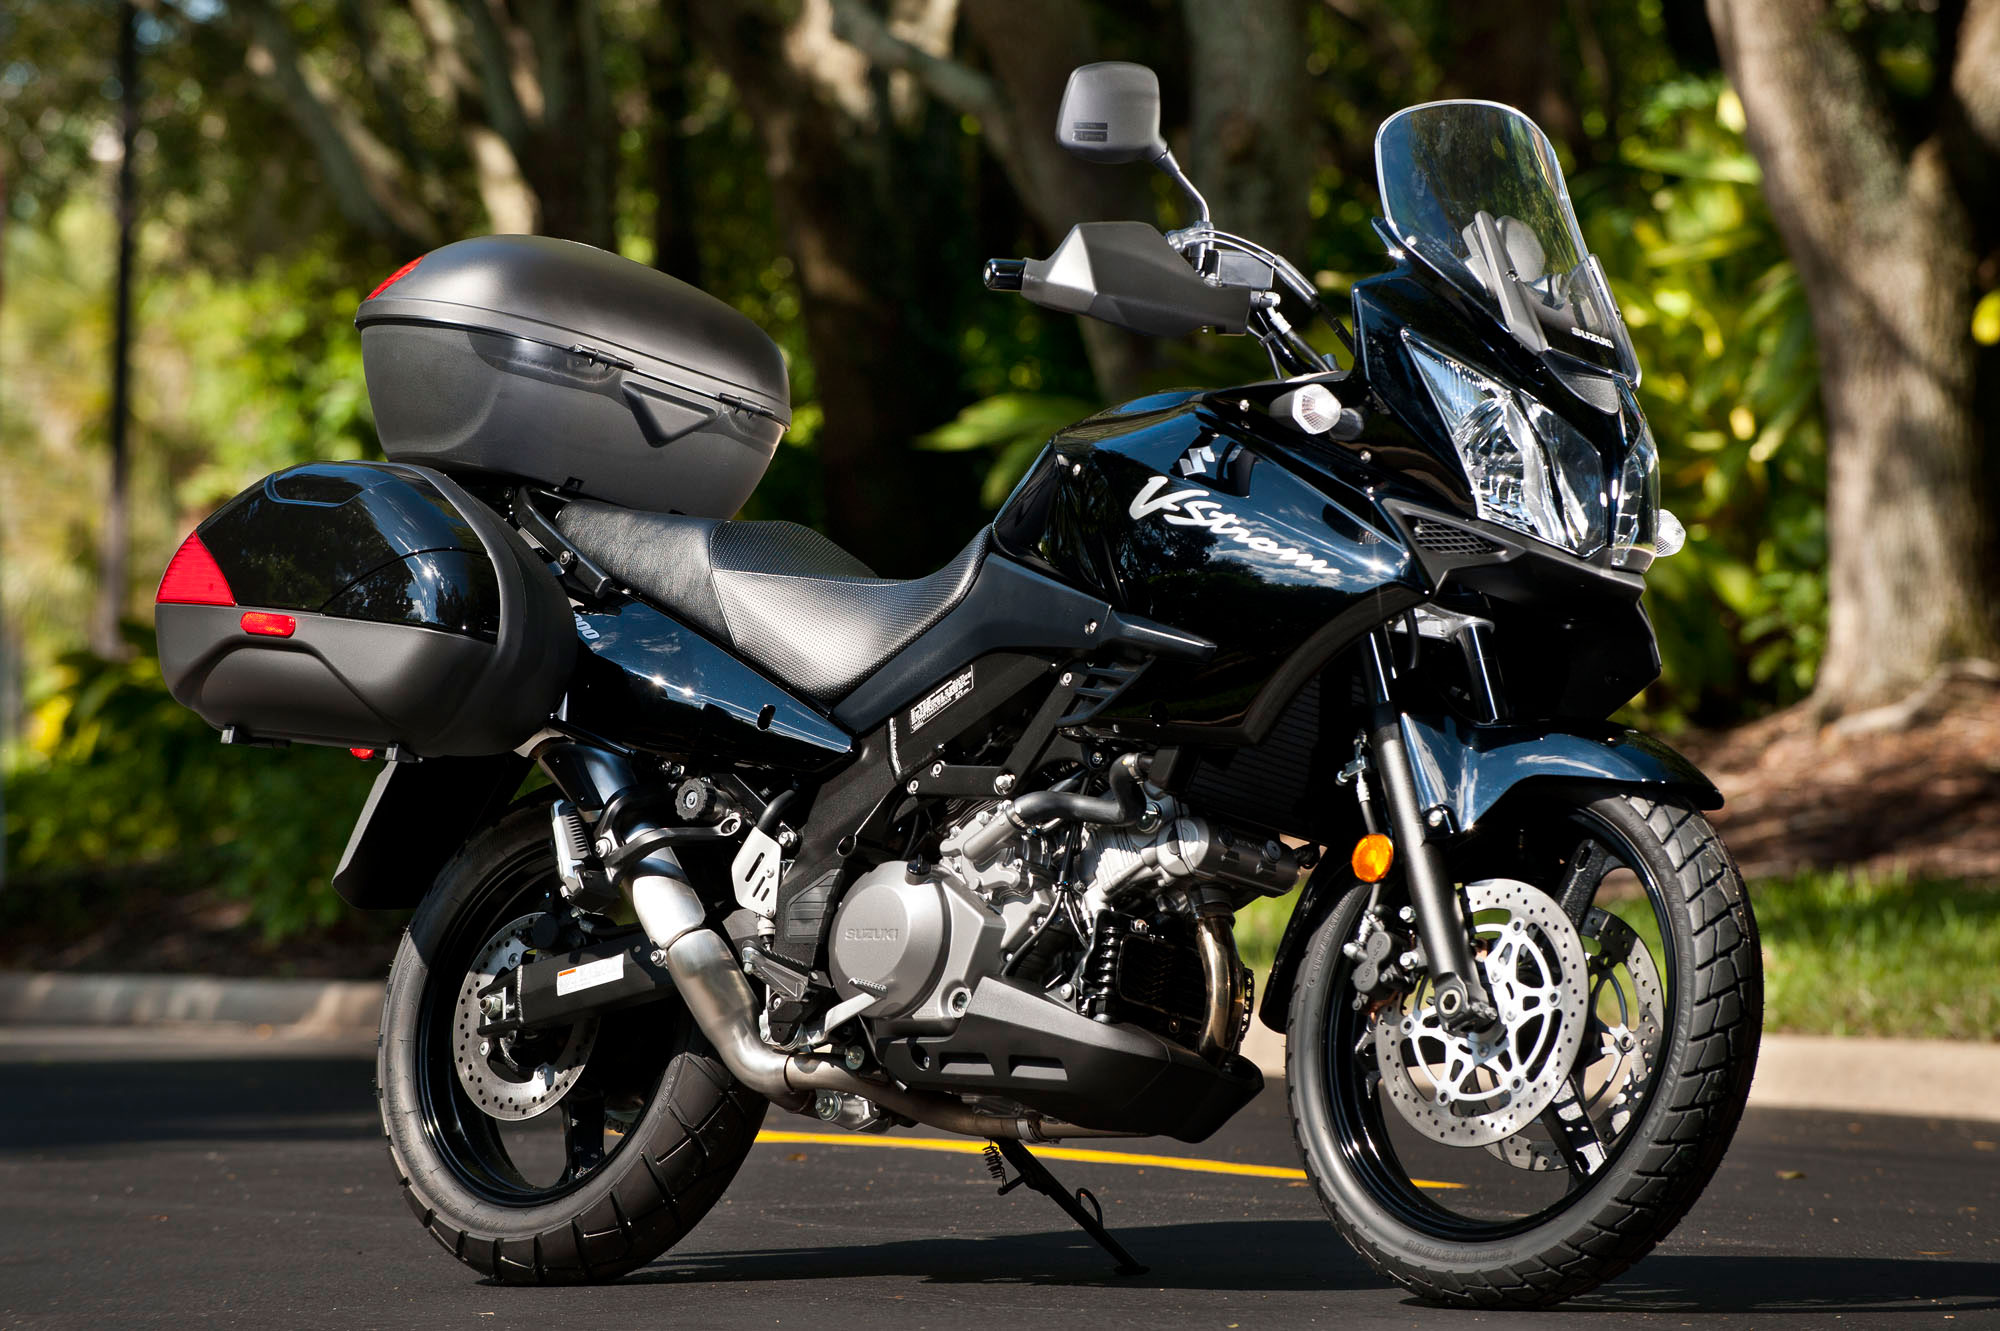 2012 suzuki v strom 1000 adventure review. Black Bedroom Furniture Sets. Home Design Ideas